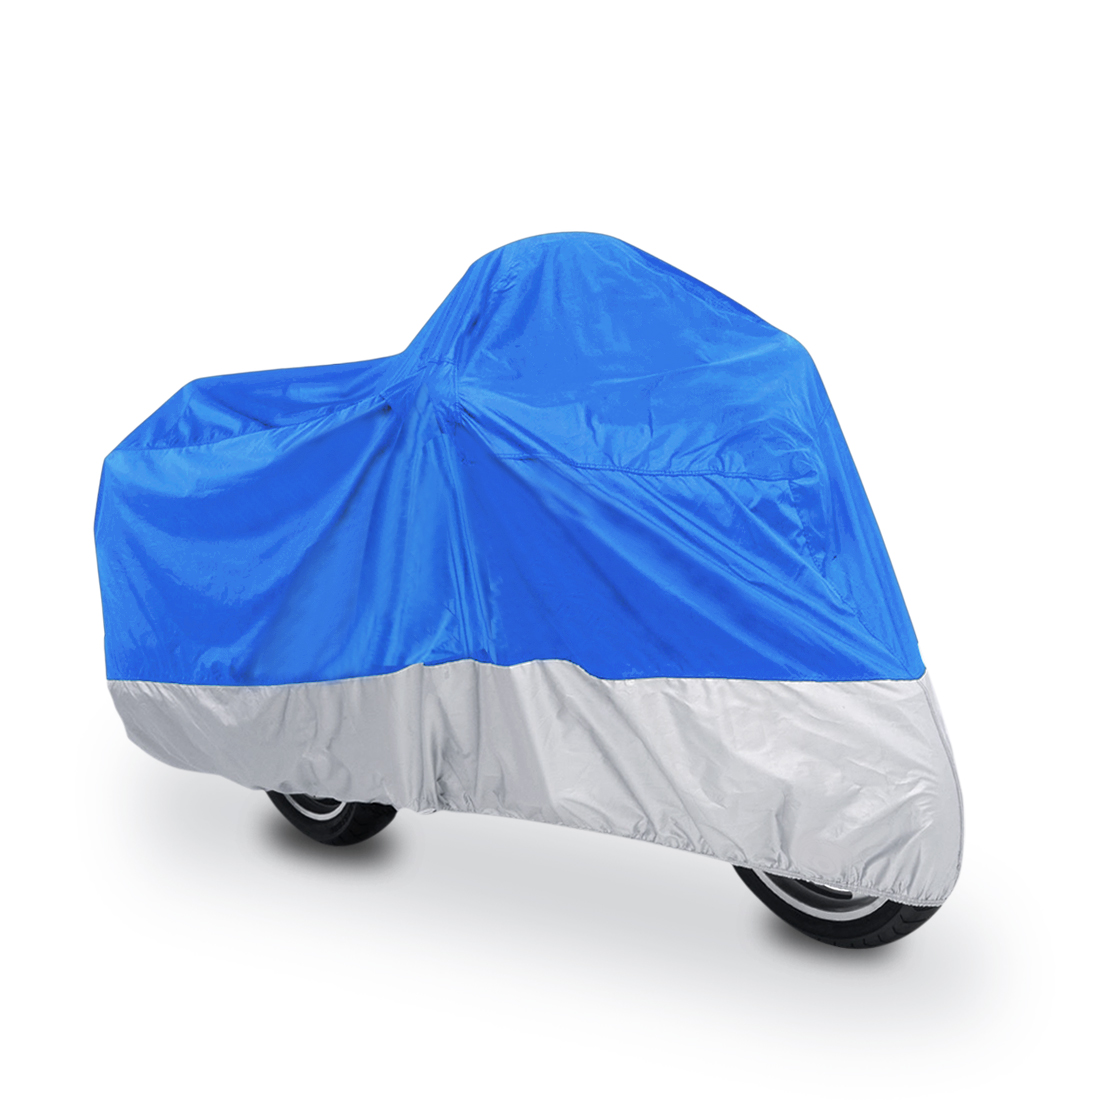 XL 180T Rain Dust Motorcycle Cover Blue+Silver Outdoor Waterproof UV Protector